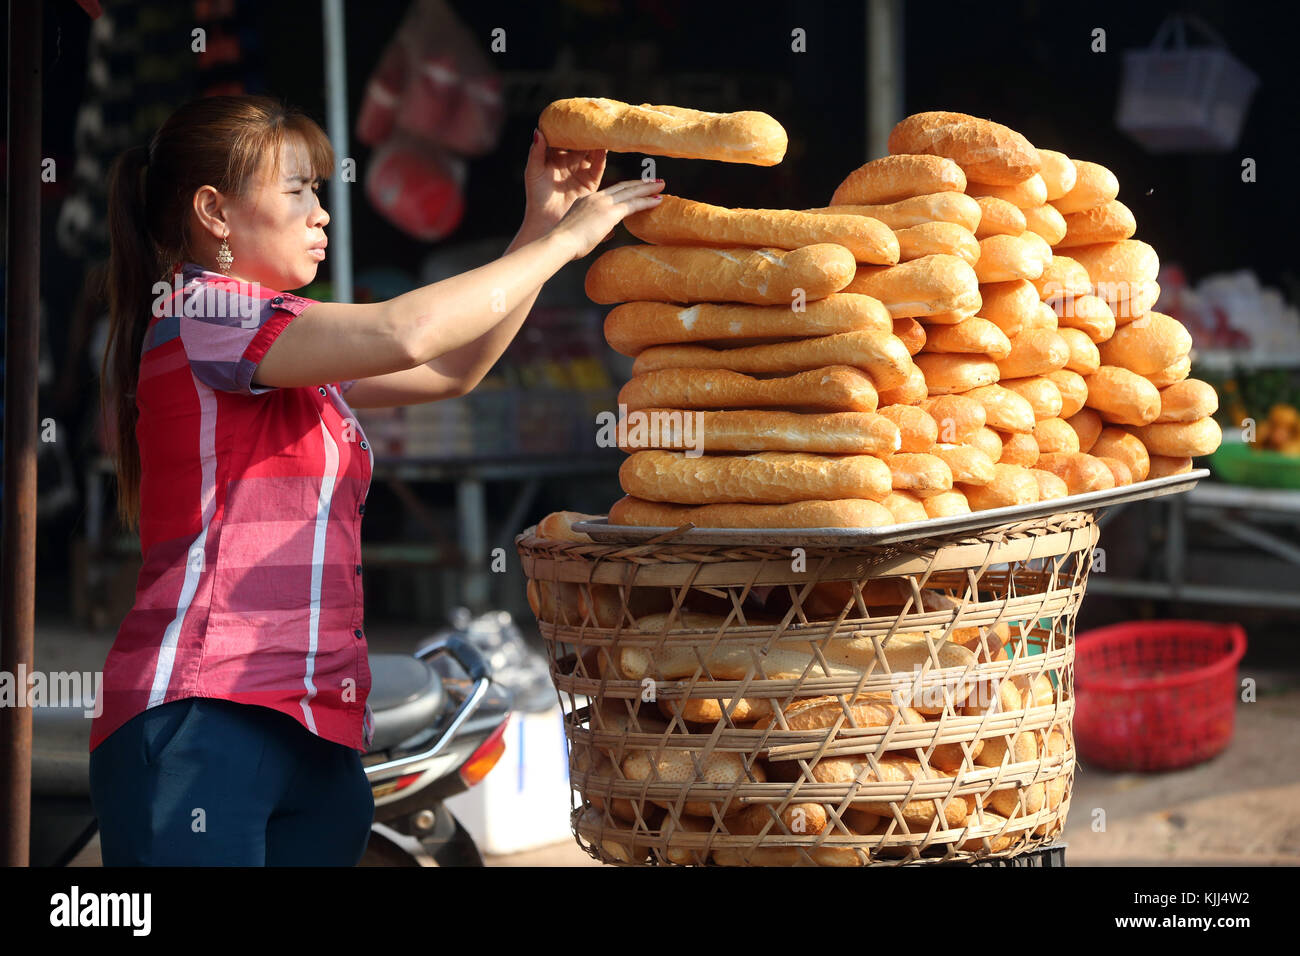 Woman selling french style bred in market.  Thay Ninh. Vietnam. - Stock Image